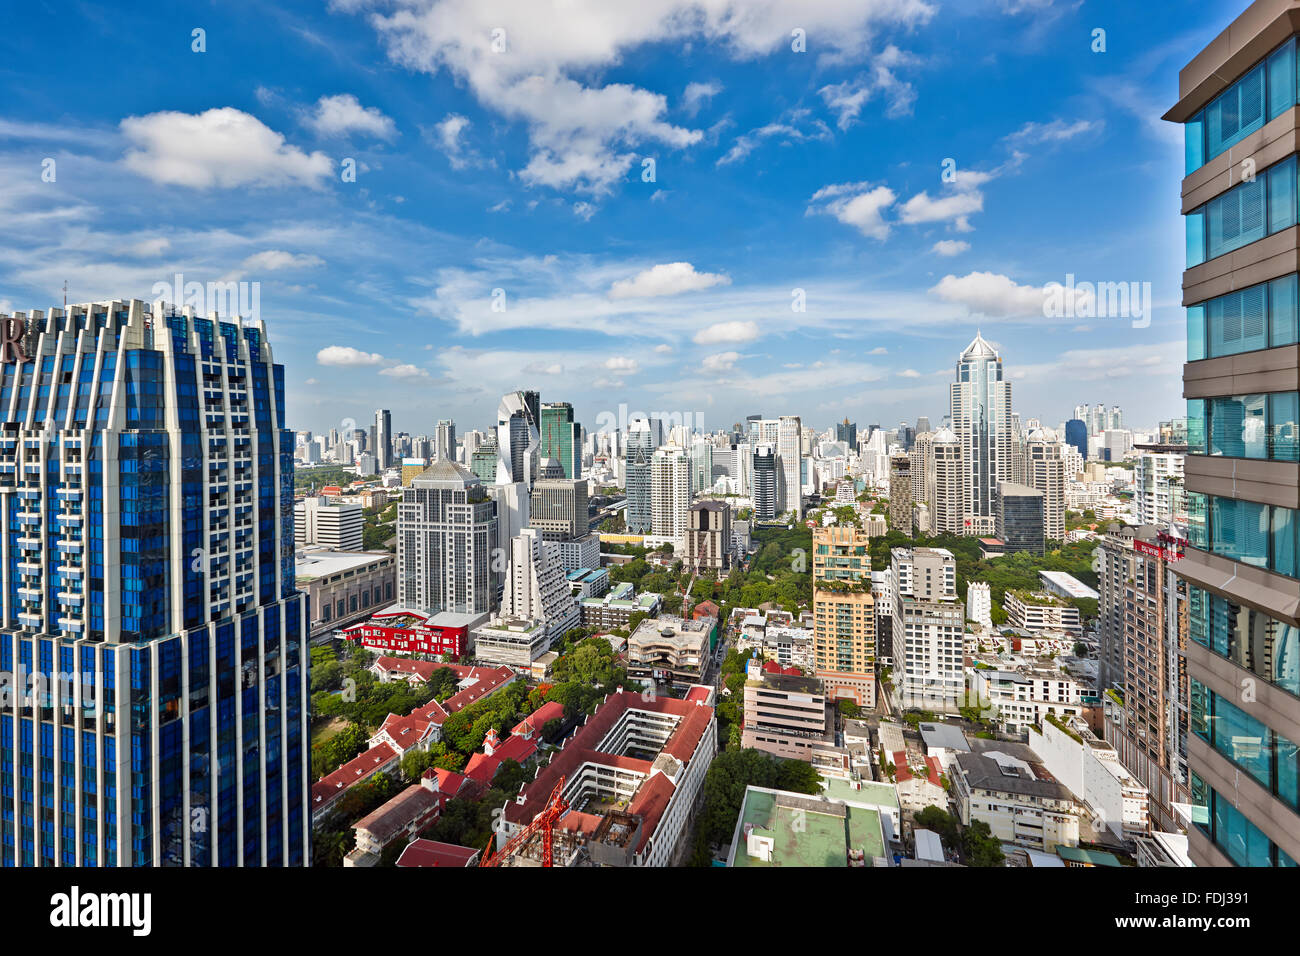 Elevated view of Lumphini Subdistrict. Pathum Wan District, Bangkok, Thailand. - Stock Image